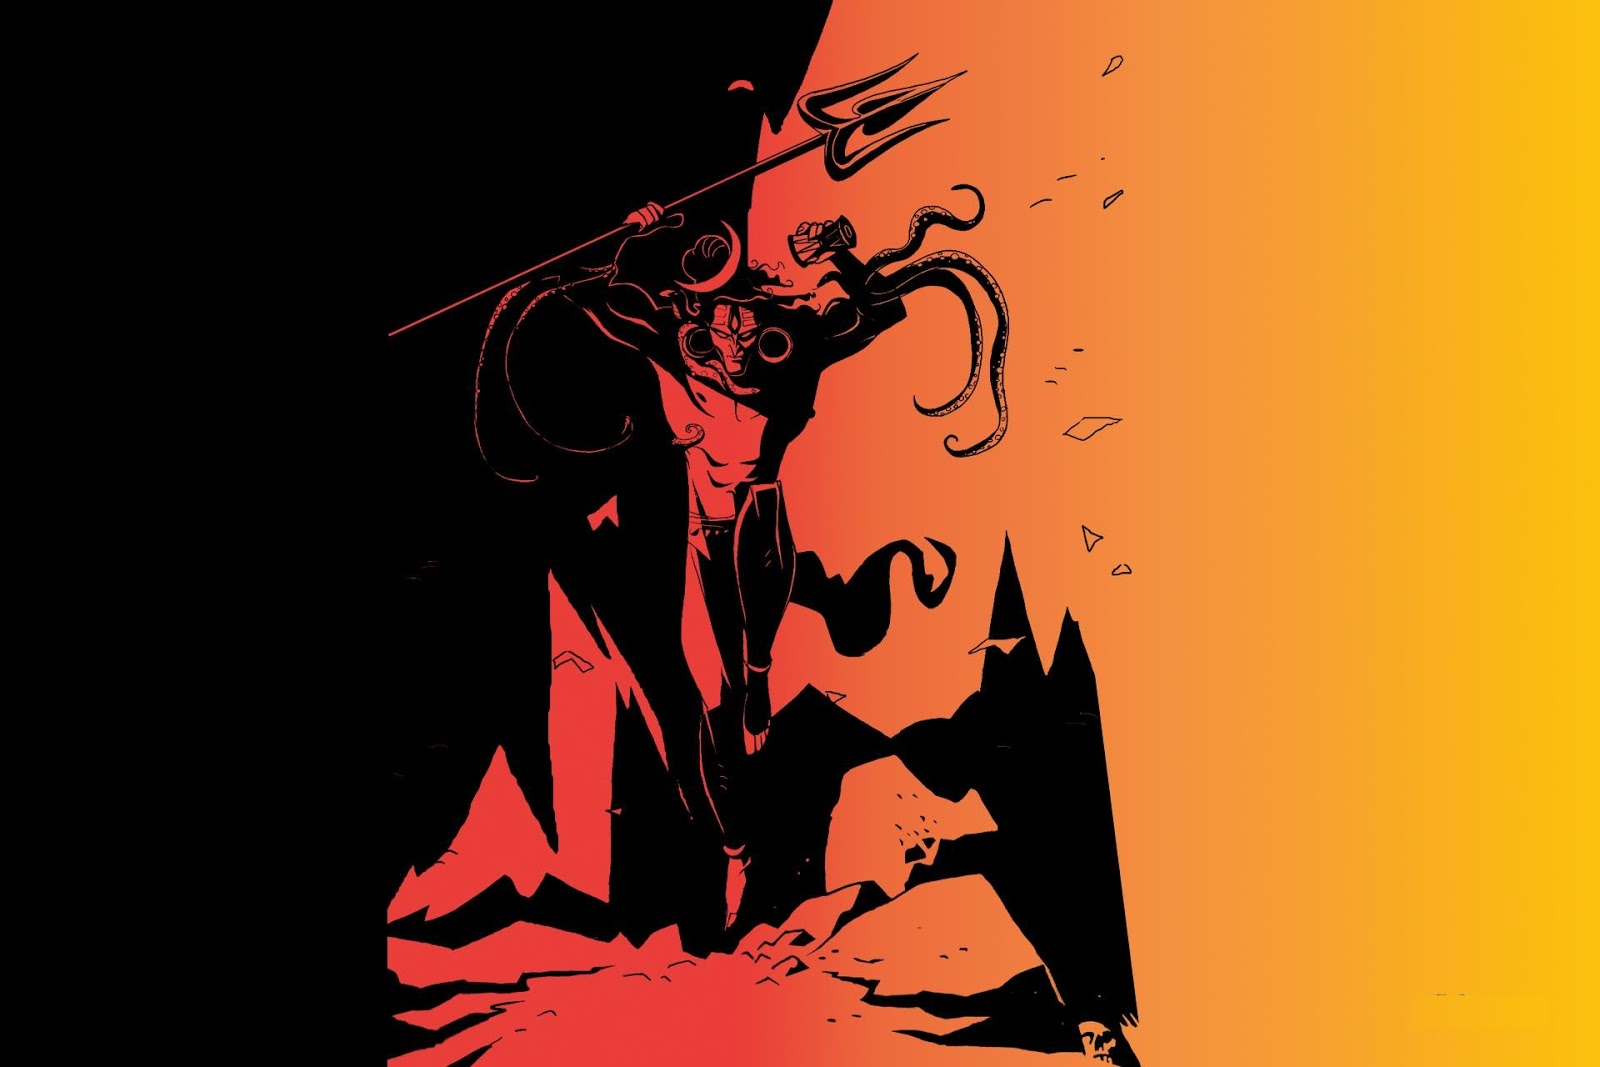 32 325179 download wallpaper lord shiva angry images download